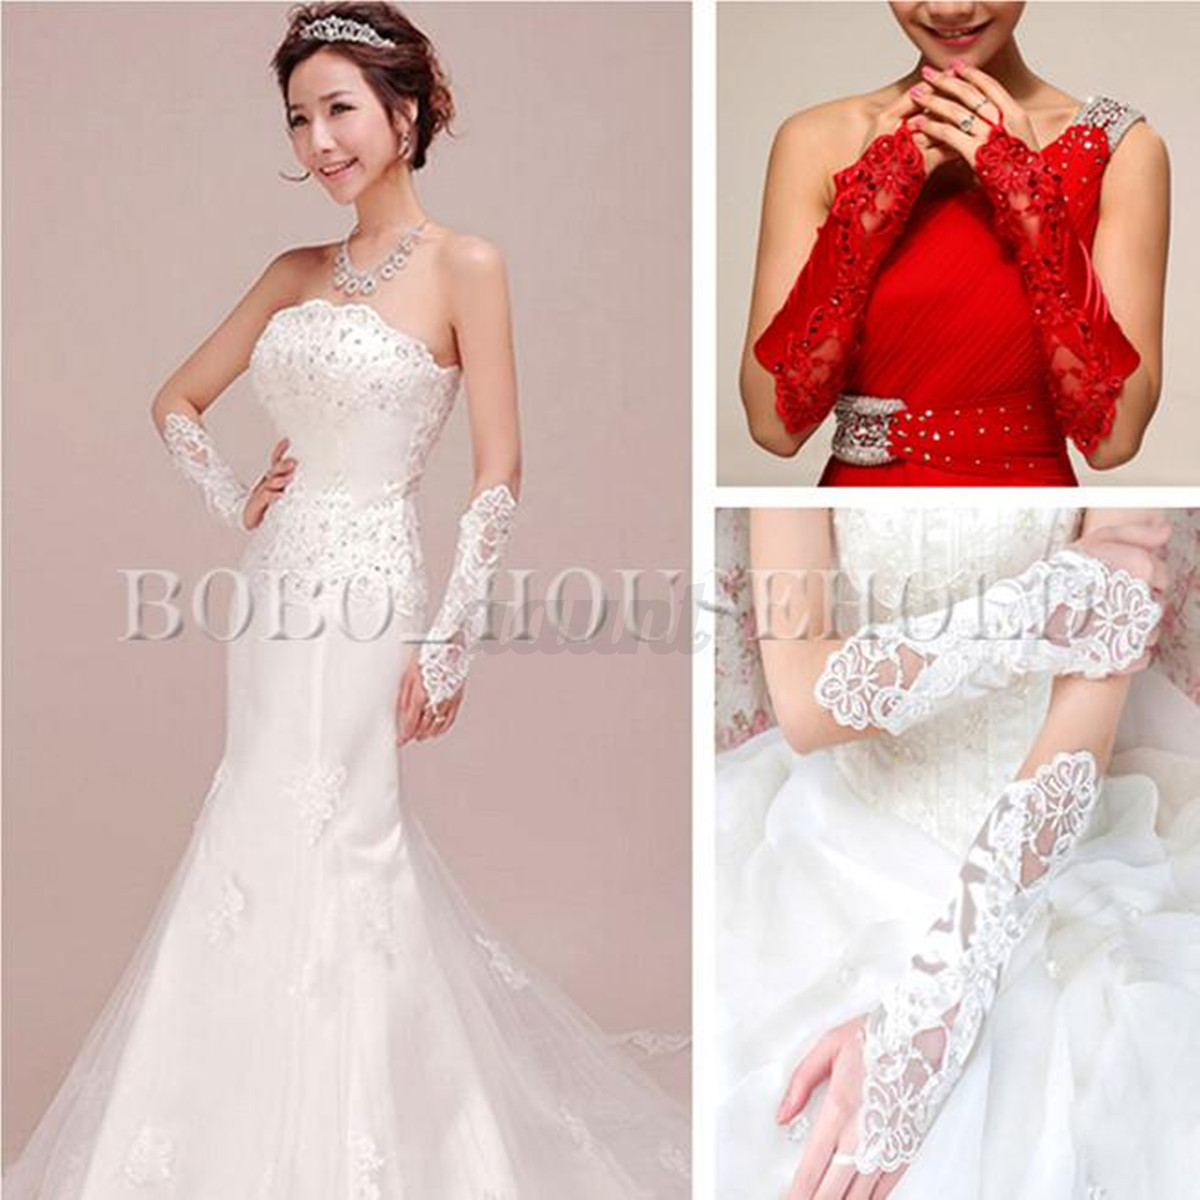 y Bride Wedding Party Dress Fingerless Pearl Lace Satin